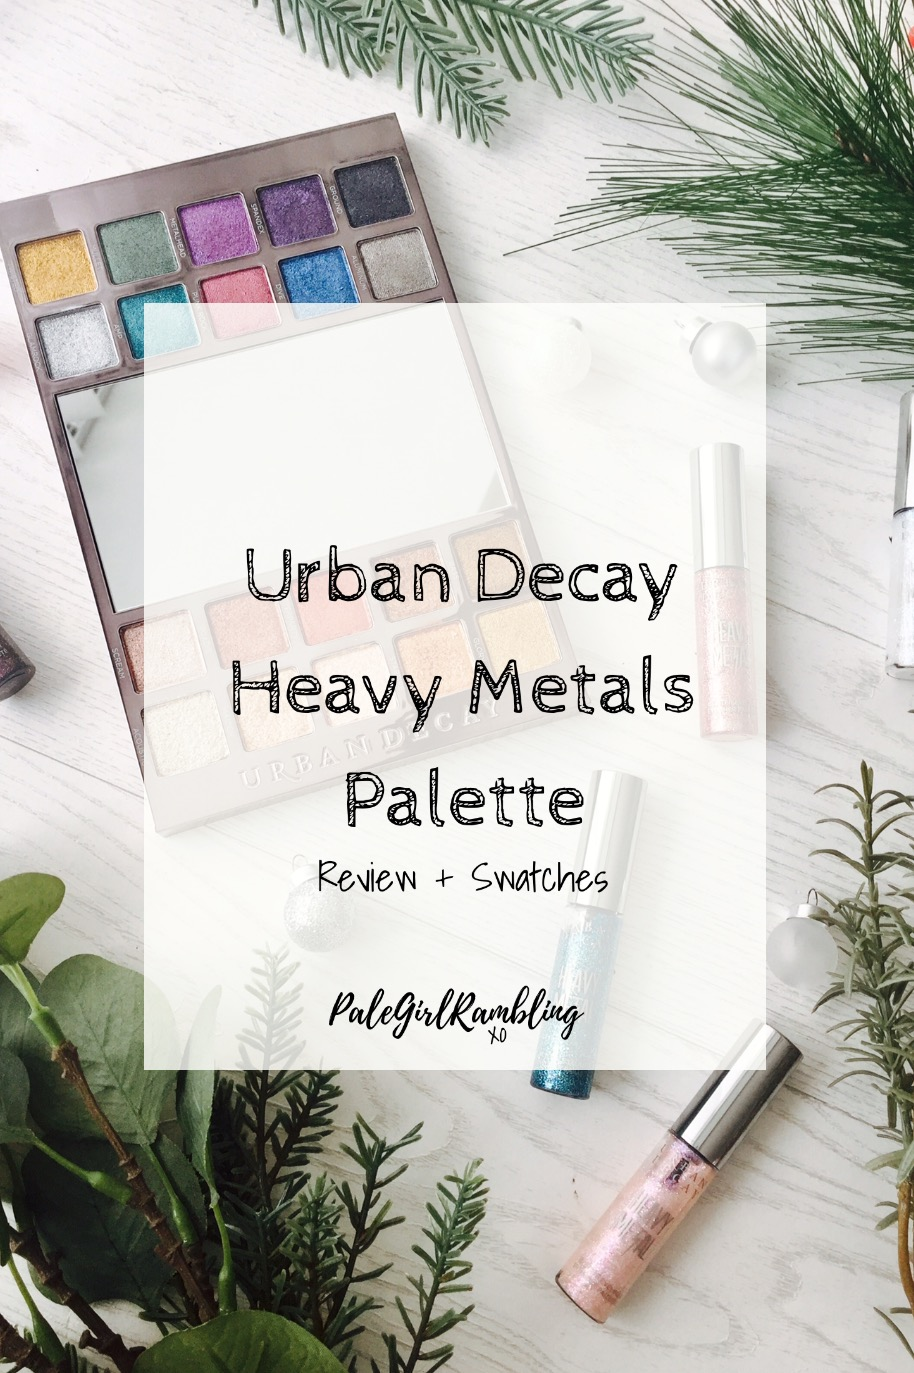 Urban Decay Heavy Metals Palette Swatches